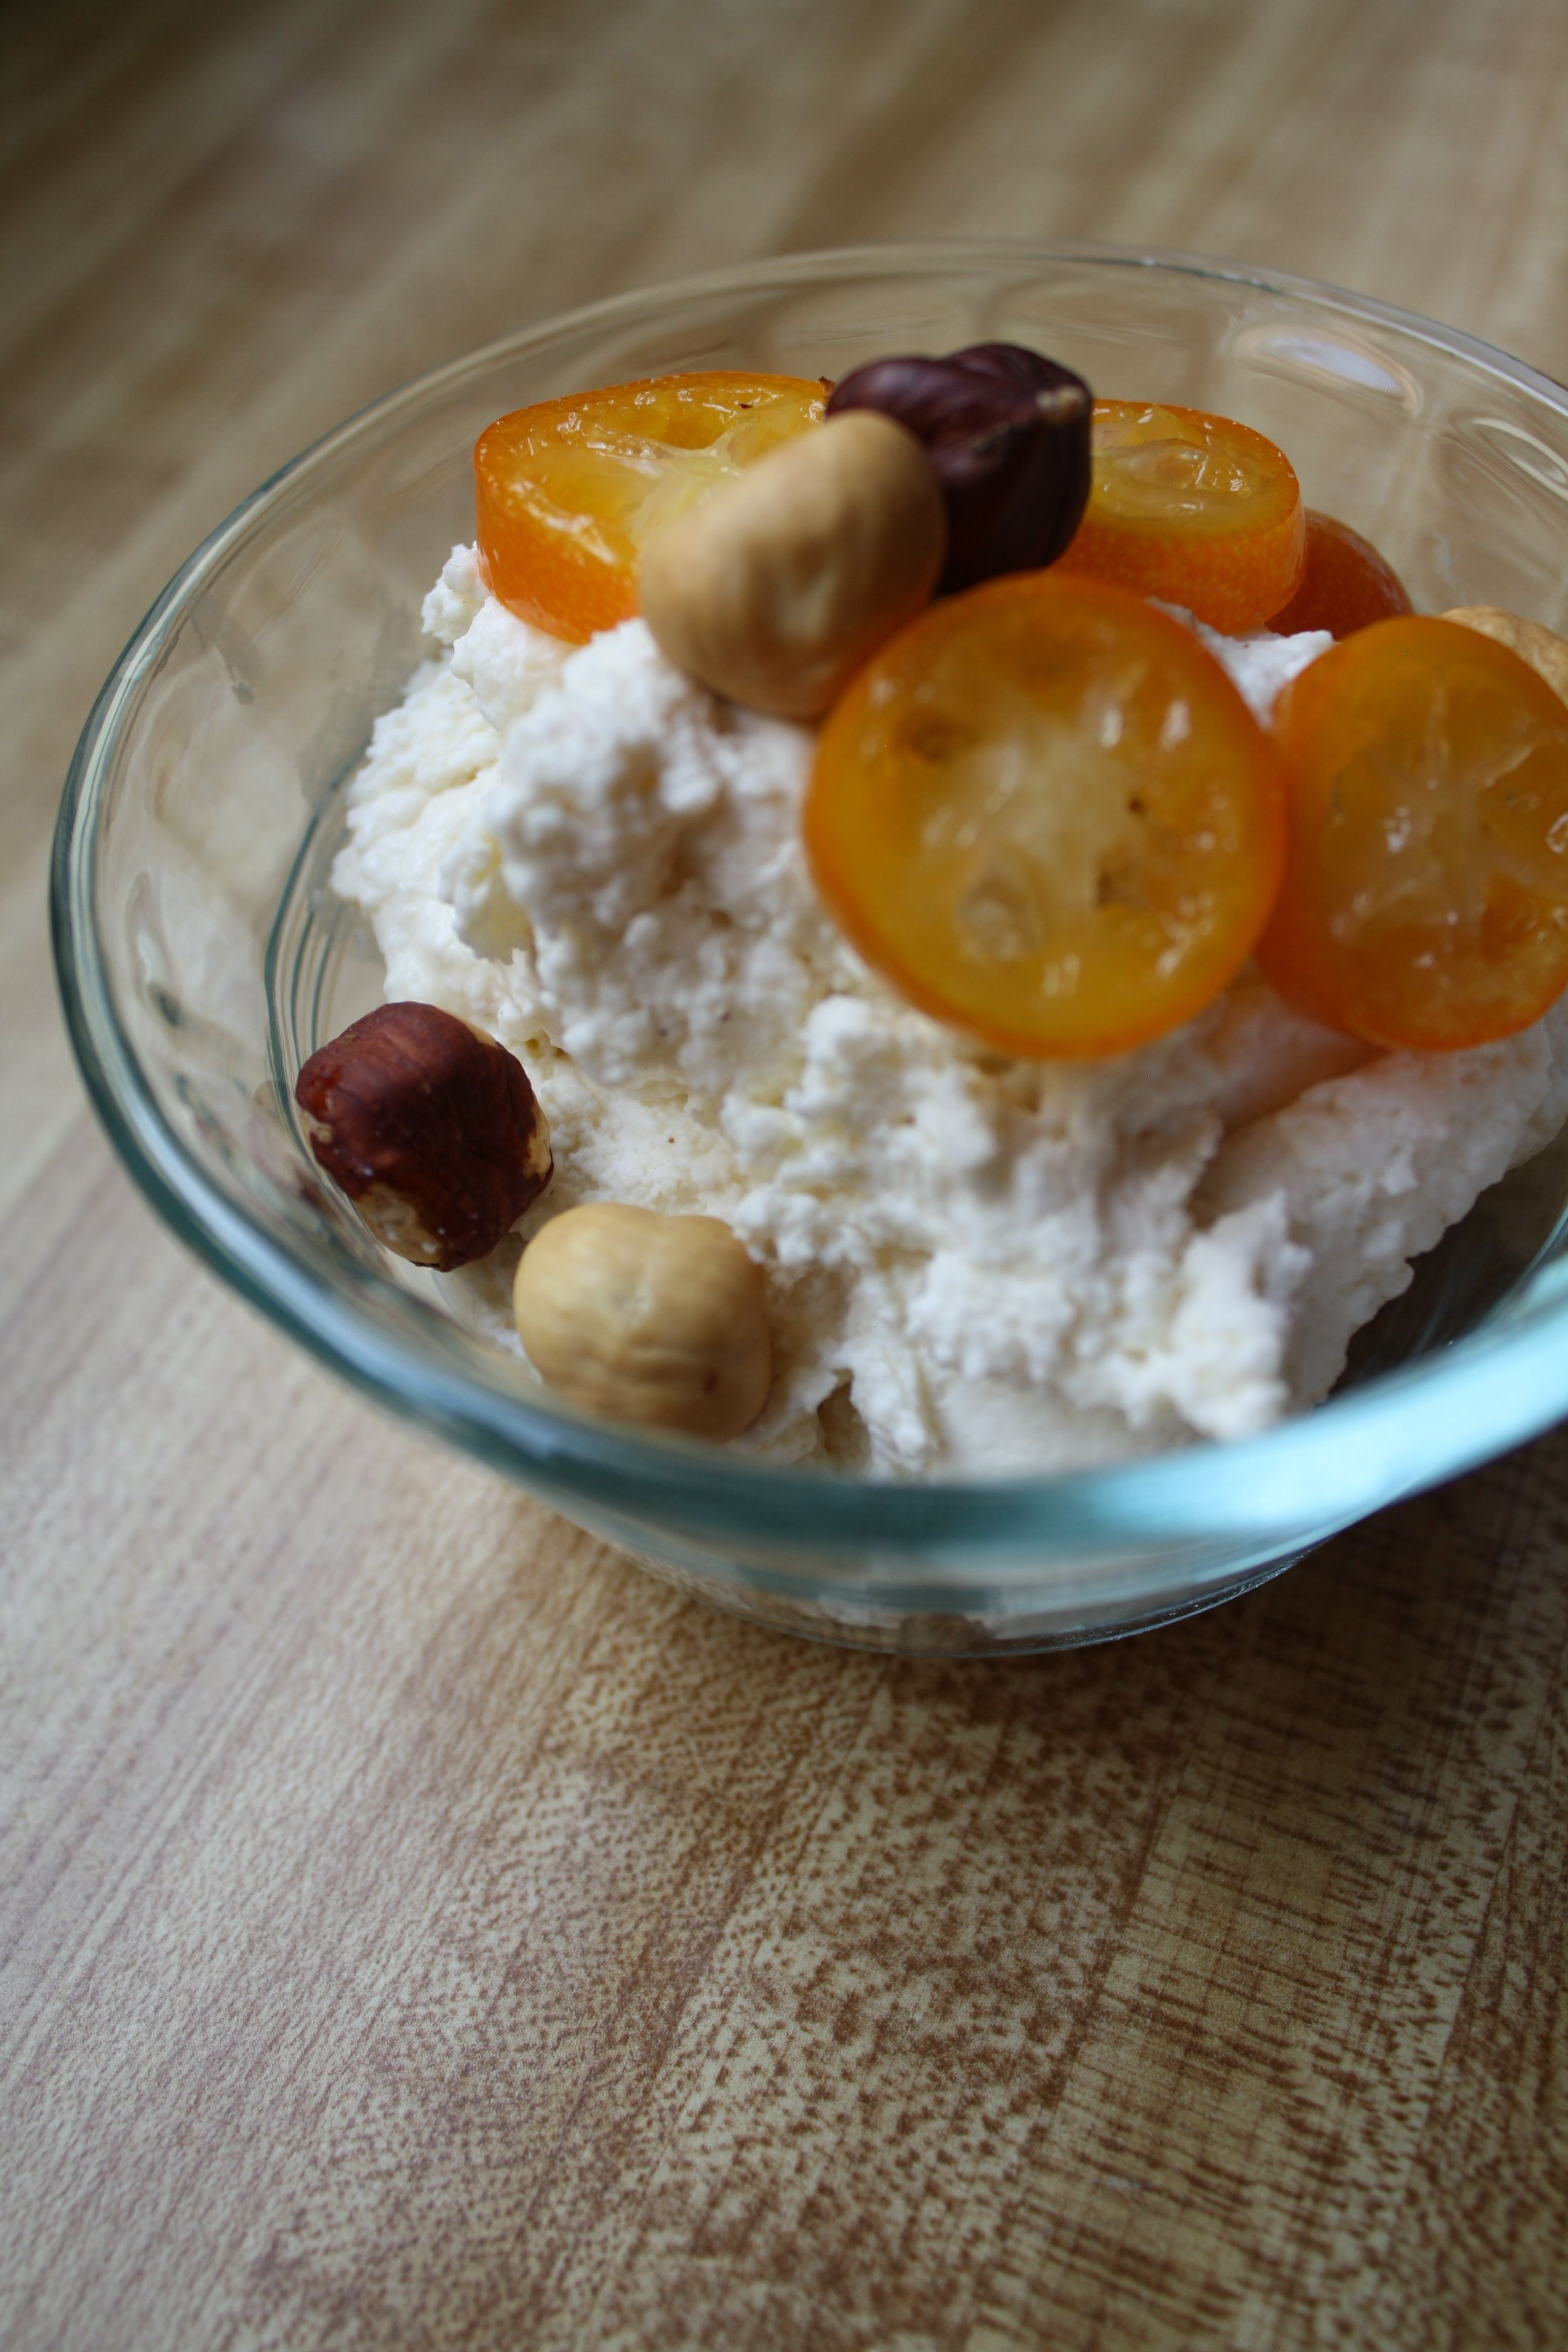 Homemade Cinnamon Ricotta with Candied Kumquats & Hazelnuts